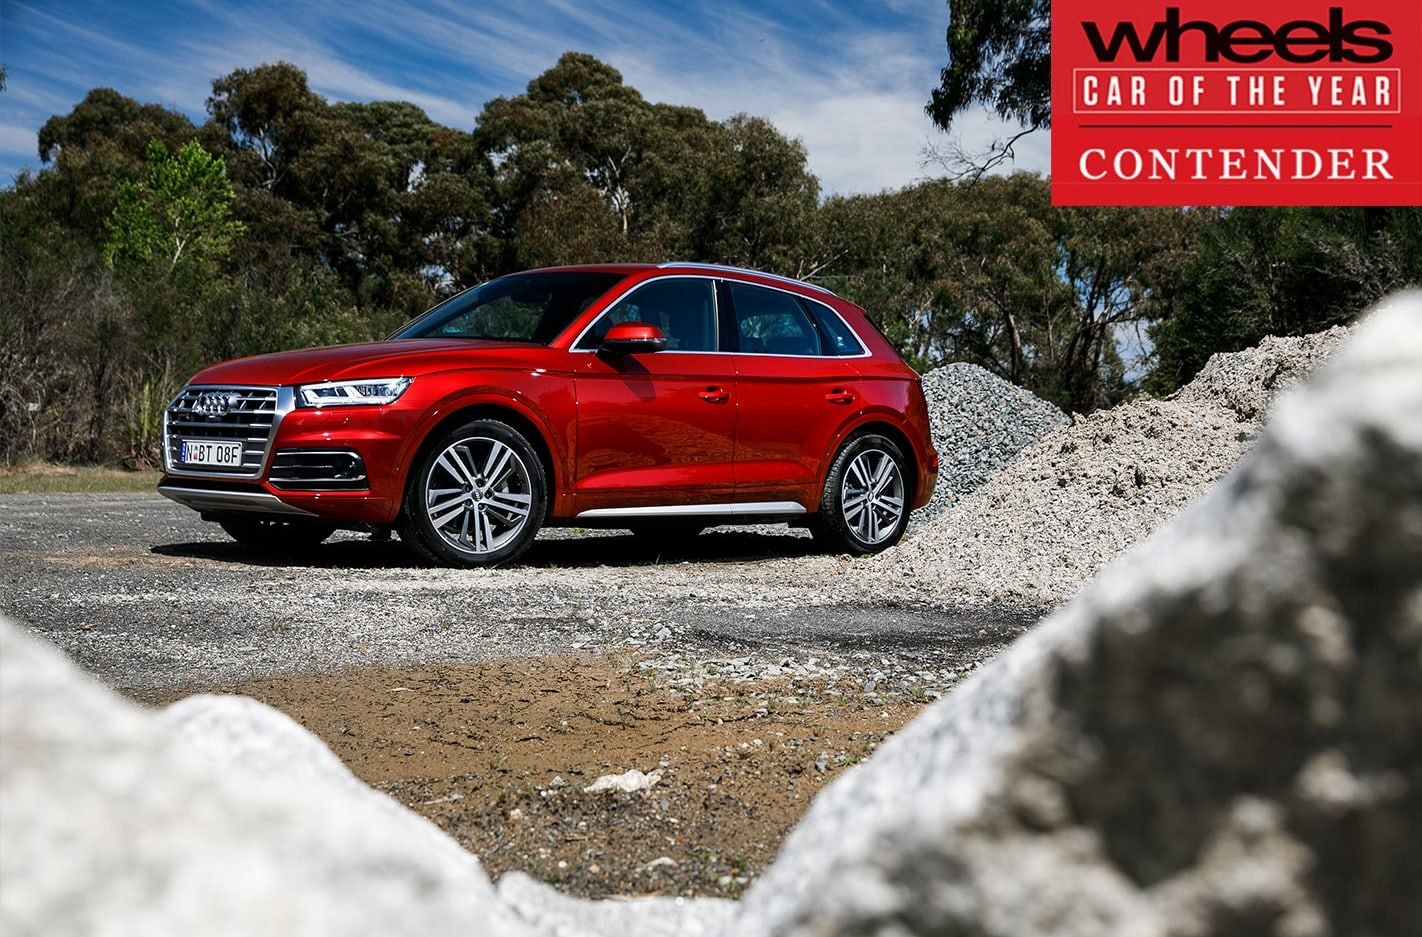 Audi Q5 2018 Car of the Year contender